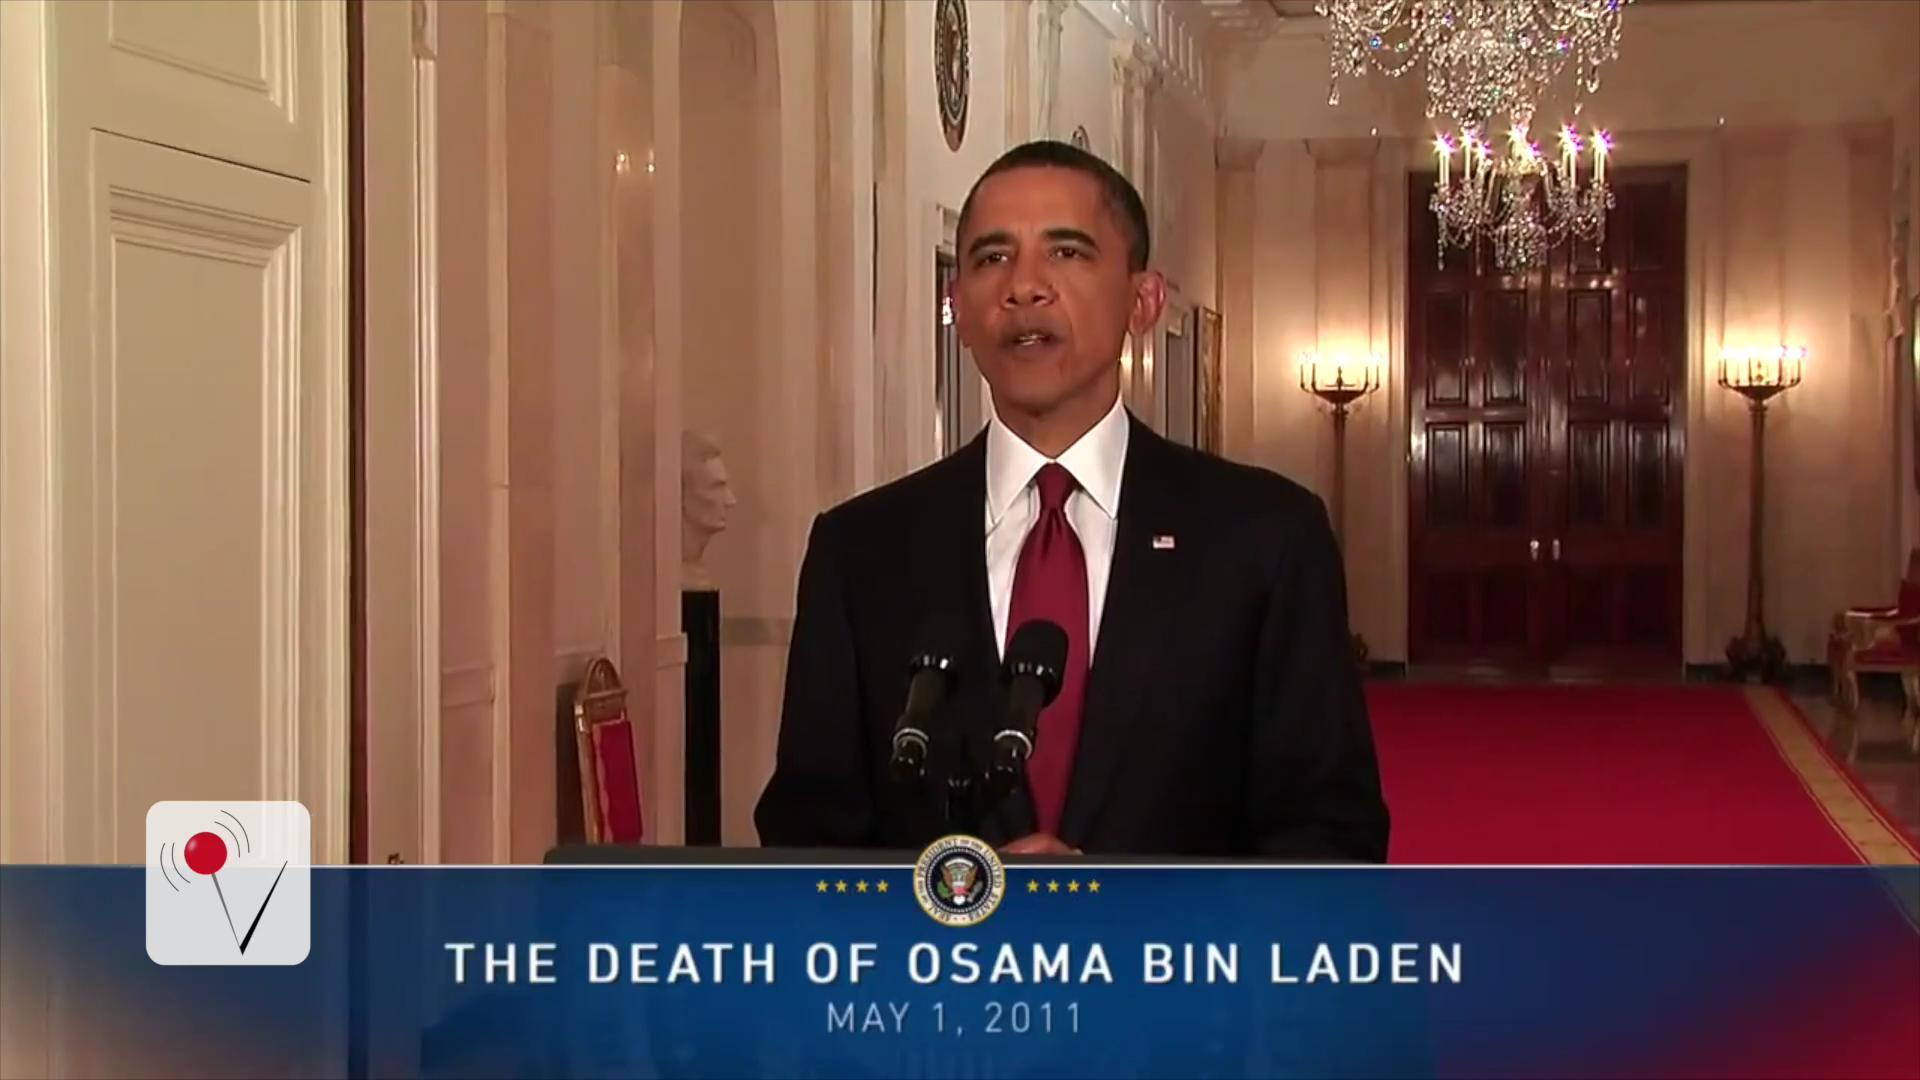 Obama gets candid on anniversary of Bin Laden's Death